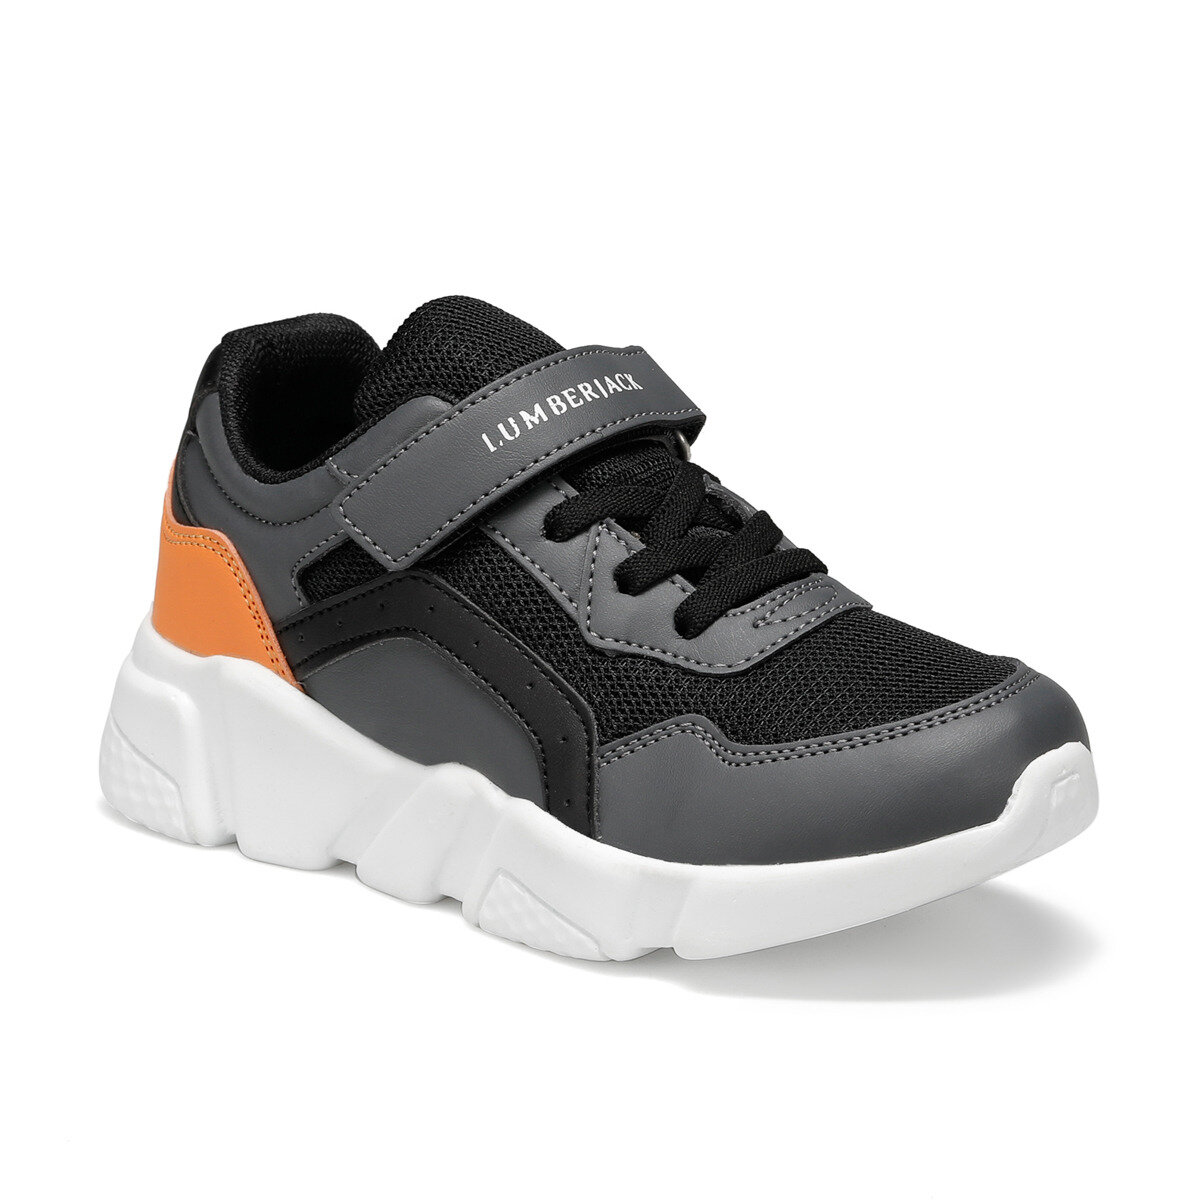 FLO CANE Black Male Child Hiking Shoes LUMBERJACK